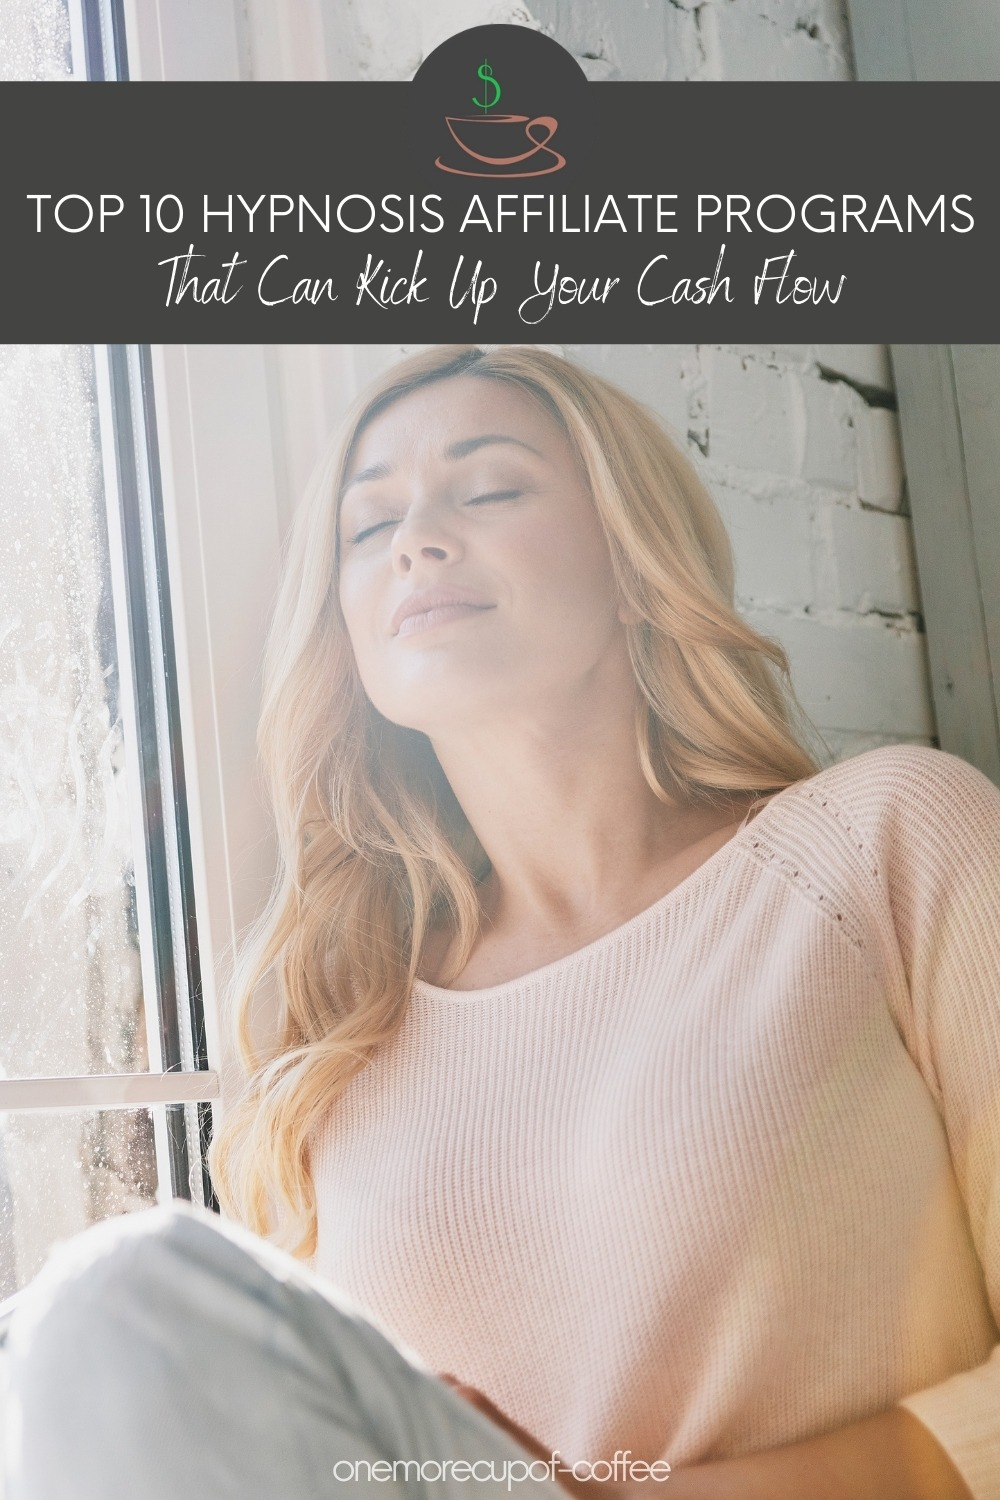 """smiling woman in peach top and jeans with her eyes closed,; with text overlay """"Top 10 Hypnosis Affiliate Programs That Can Kick Up Your Cash Flow"""""""